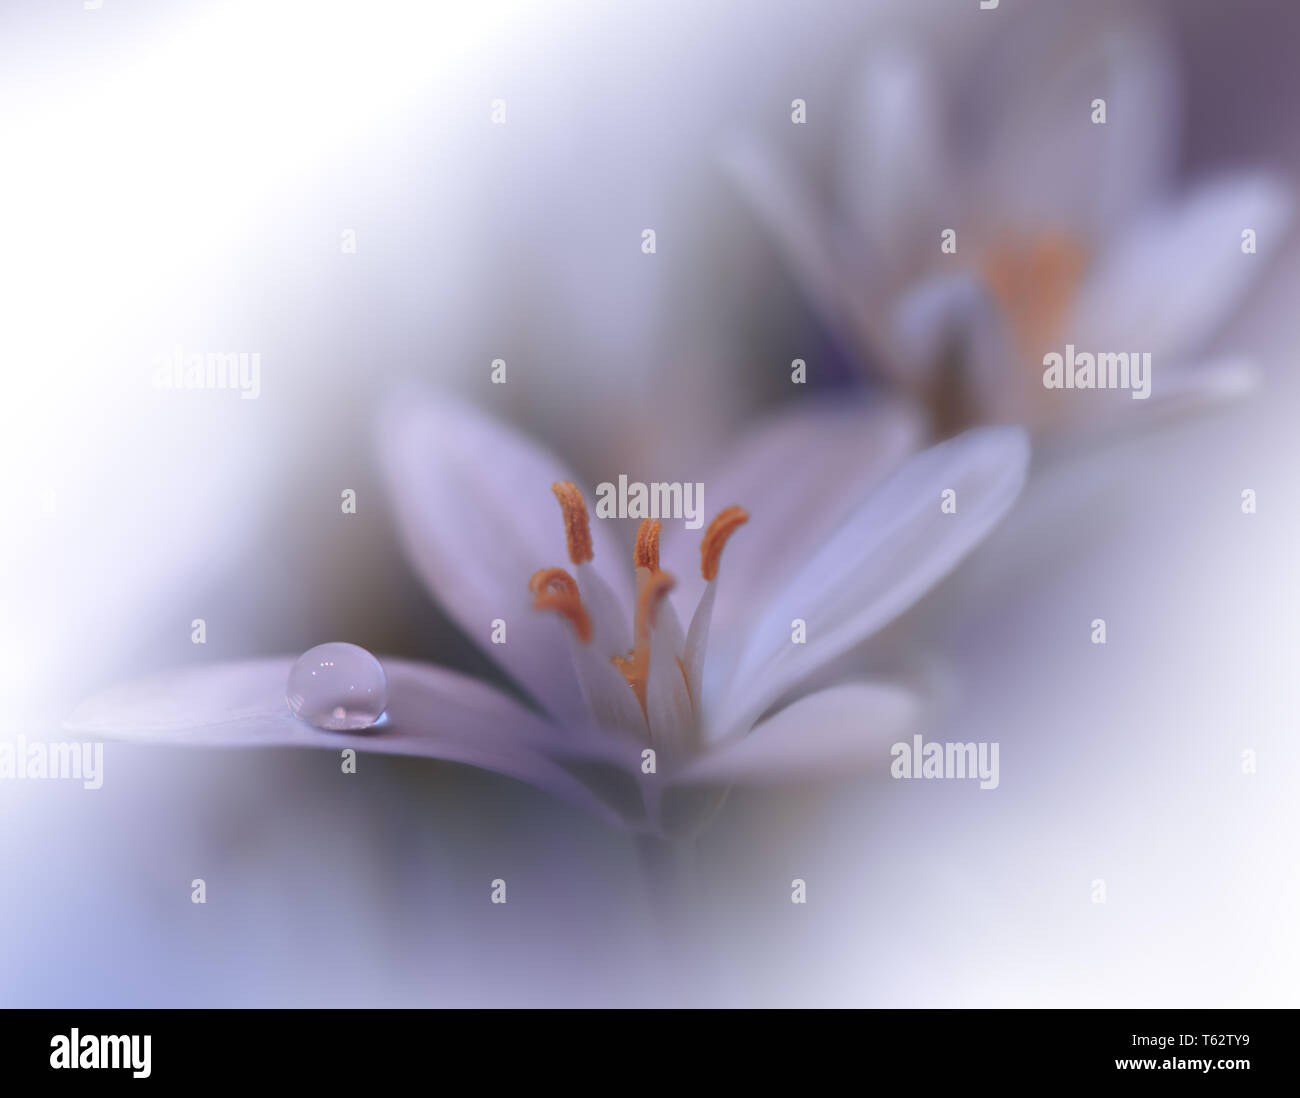 Beautiful White Nature Background Colorful Artistic Wallpaper Natural Abstract Macro Photography Creative Floral Art Design Love Romance Romantic Pure Stock Photo Alamy